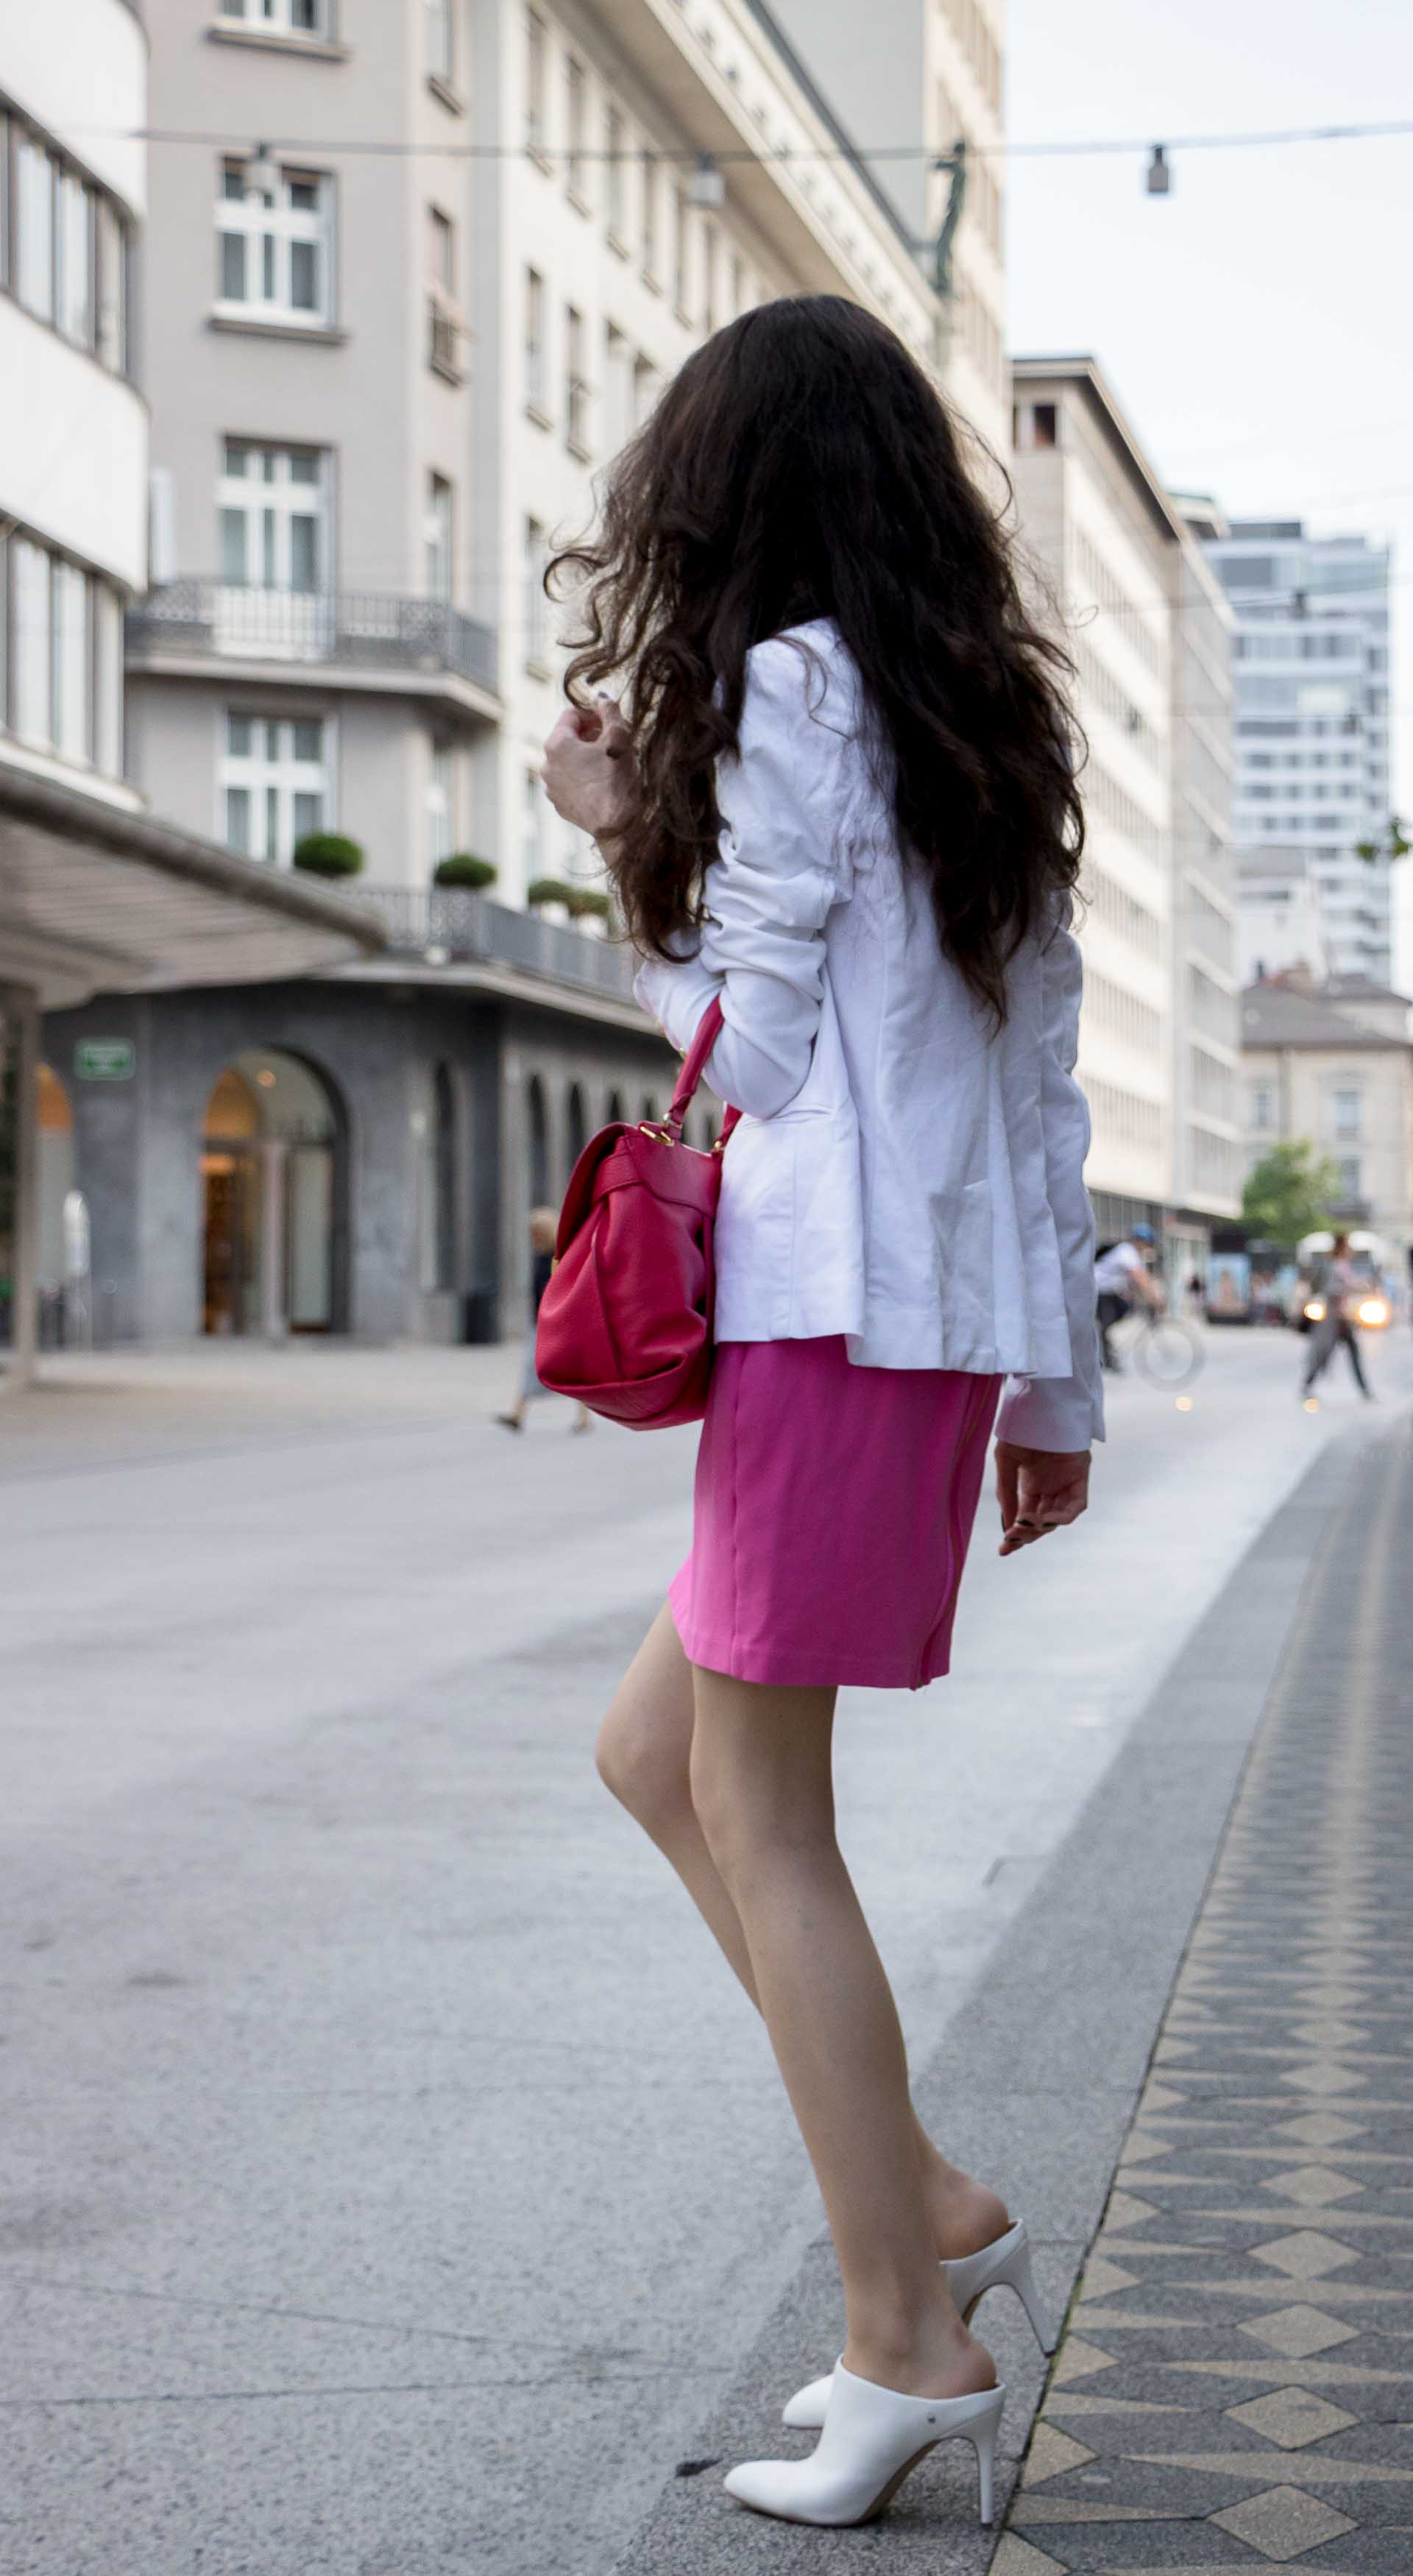 Fashion Blogger Veronika Lipar of Brunette from Wall Street dressed in summer business casual outfit, white high heel close toe mules, pink tailored short dress, white blazer, pink top handle bag running to work